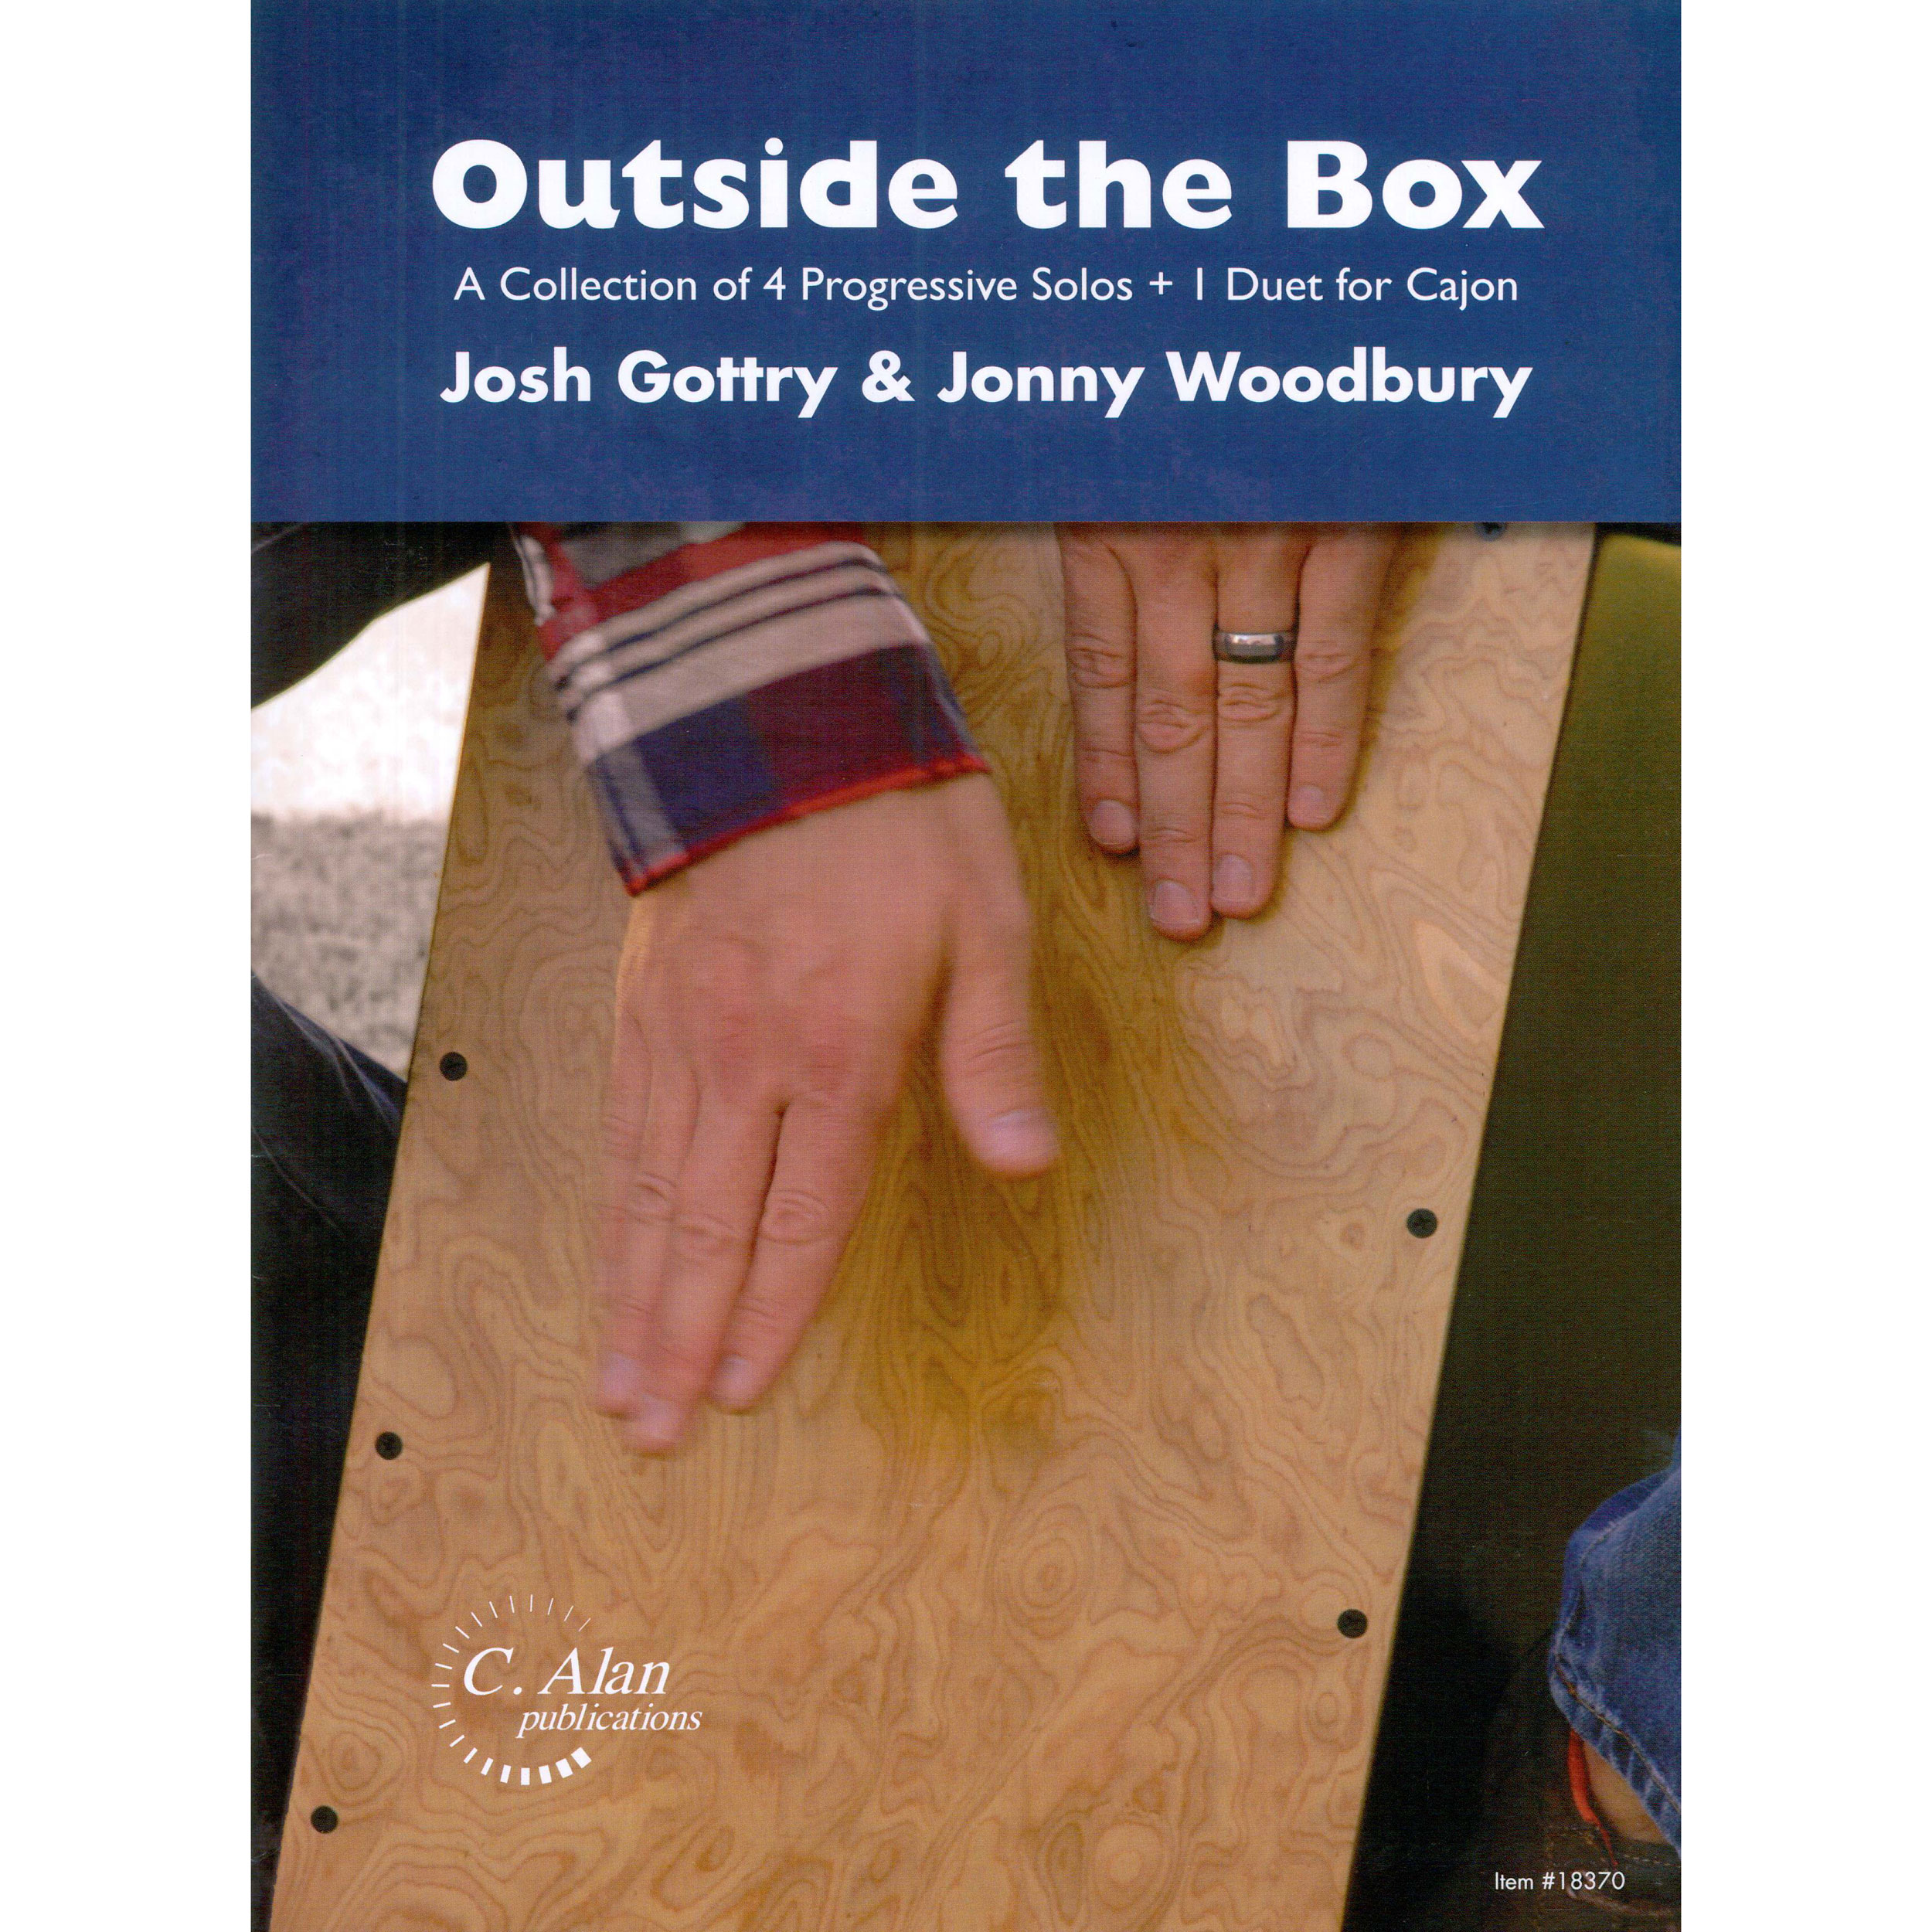 Outside the Box by Josh Gottry and Jonny Woodbury